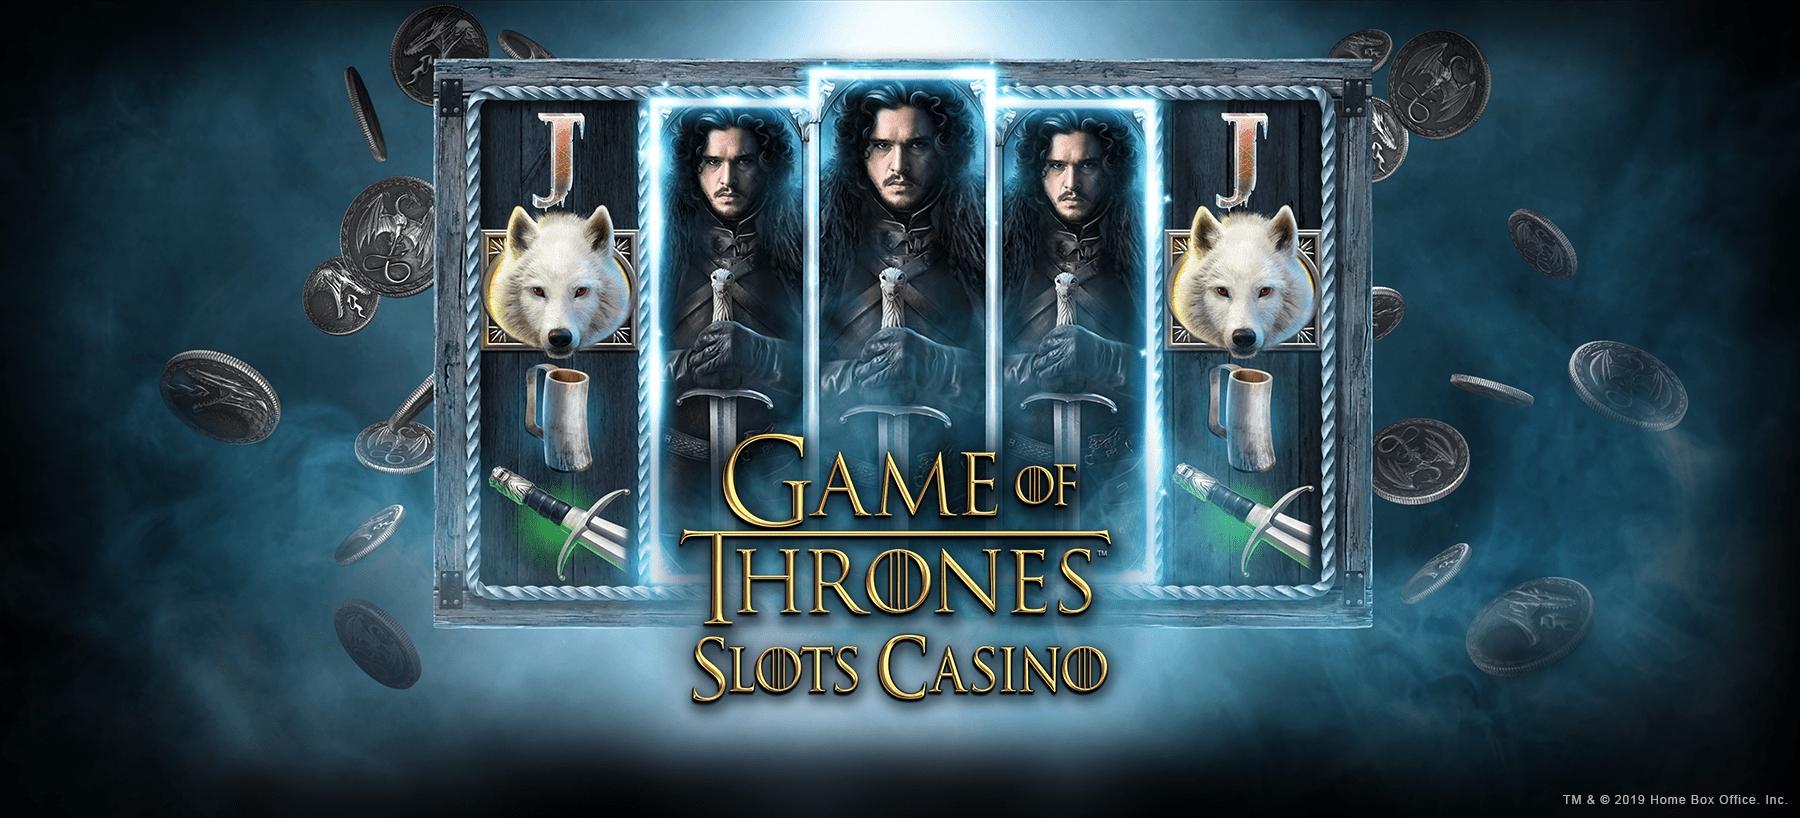 Game of Thrones Slots Casino Hero Image